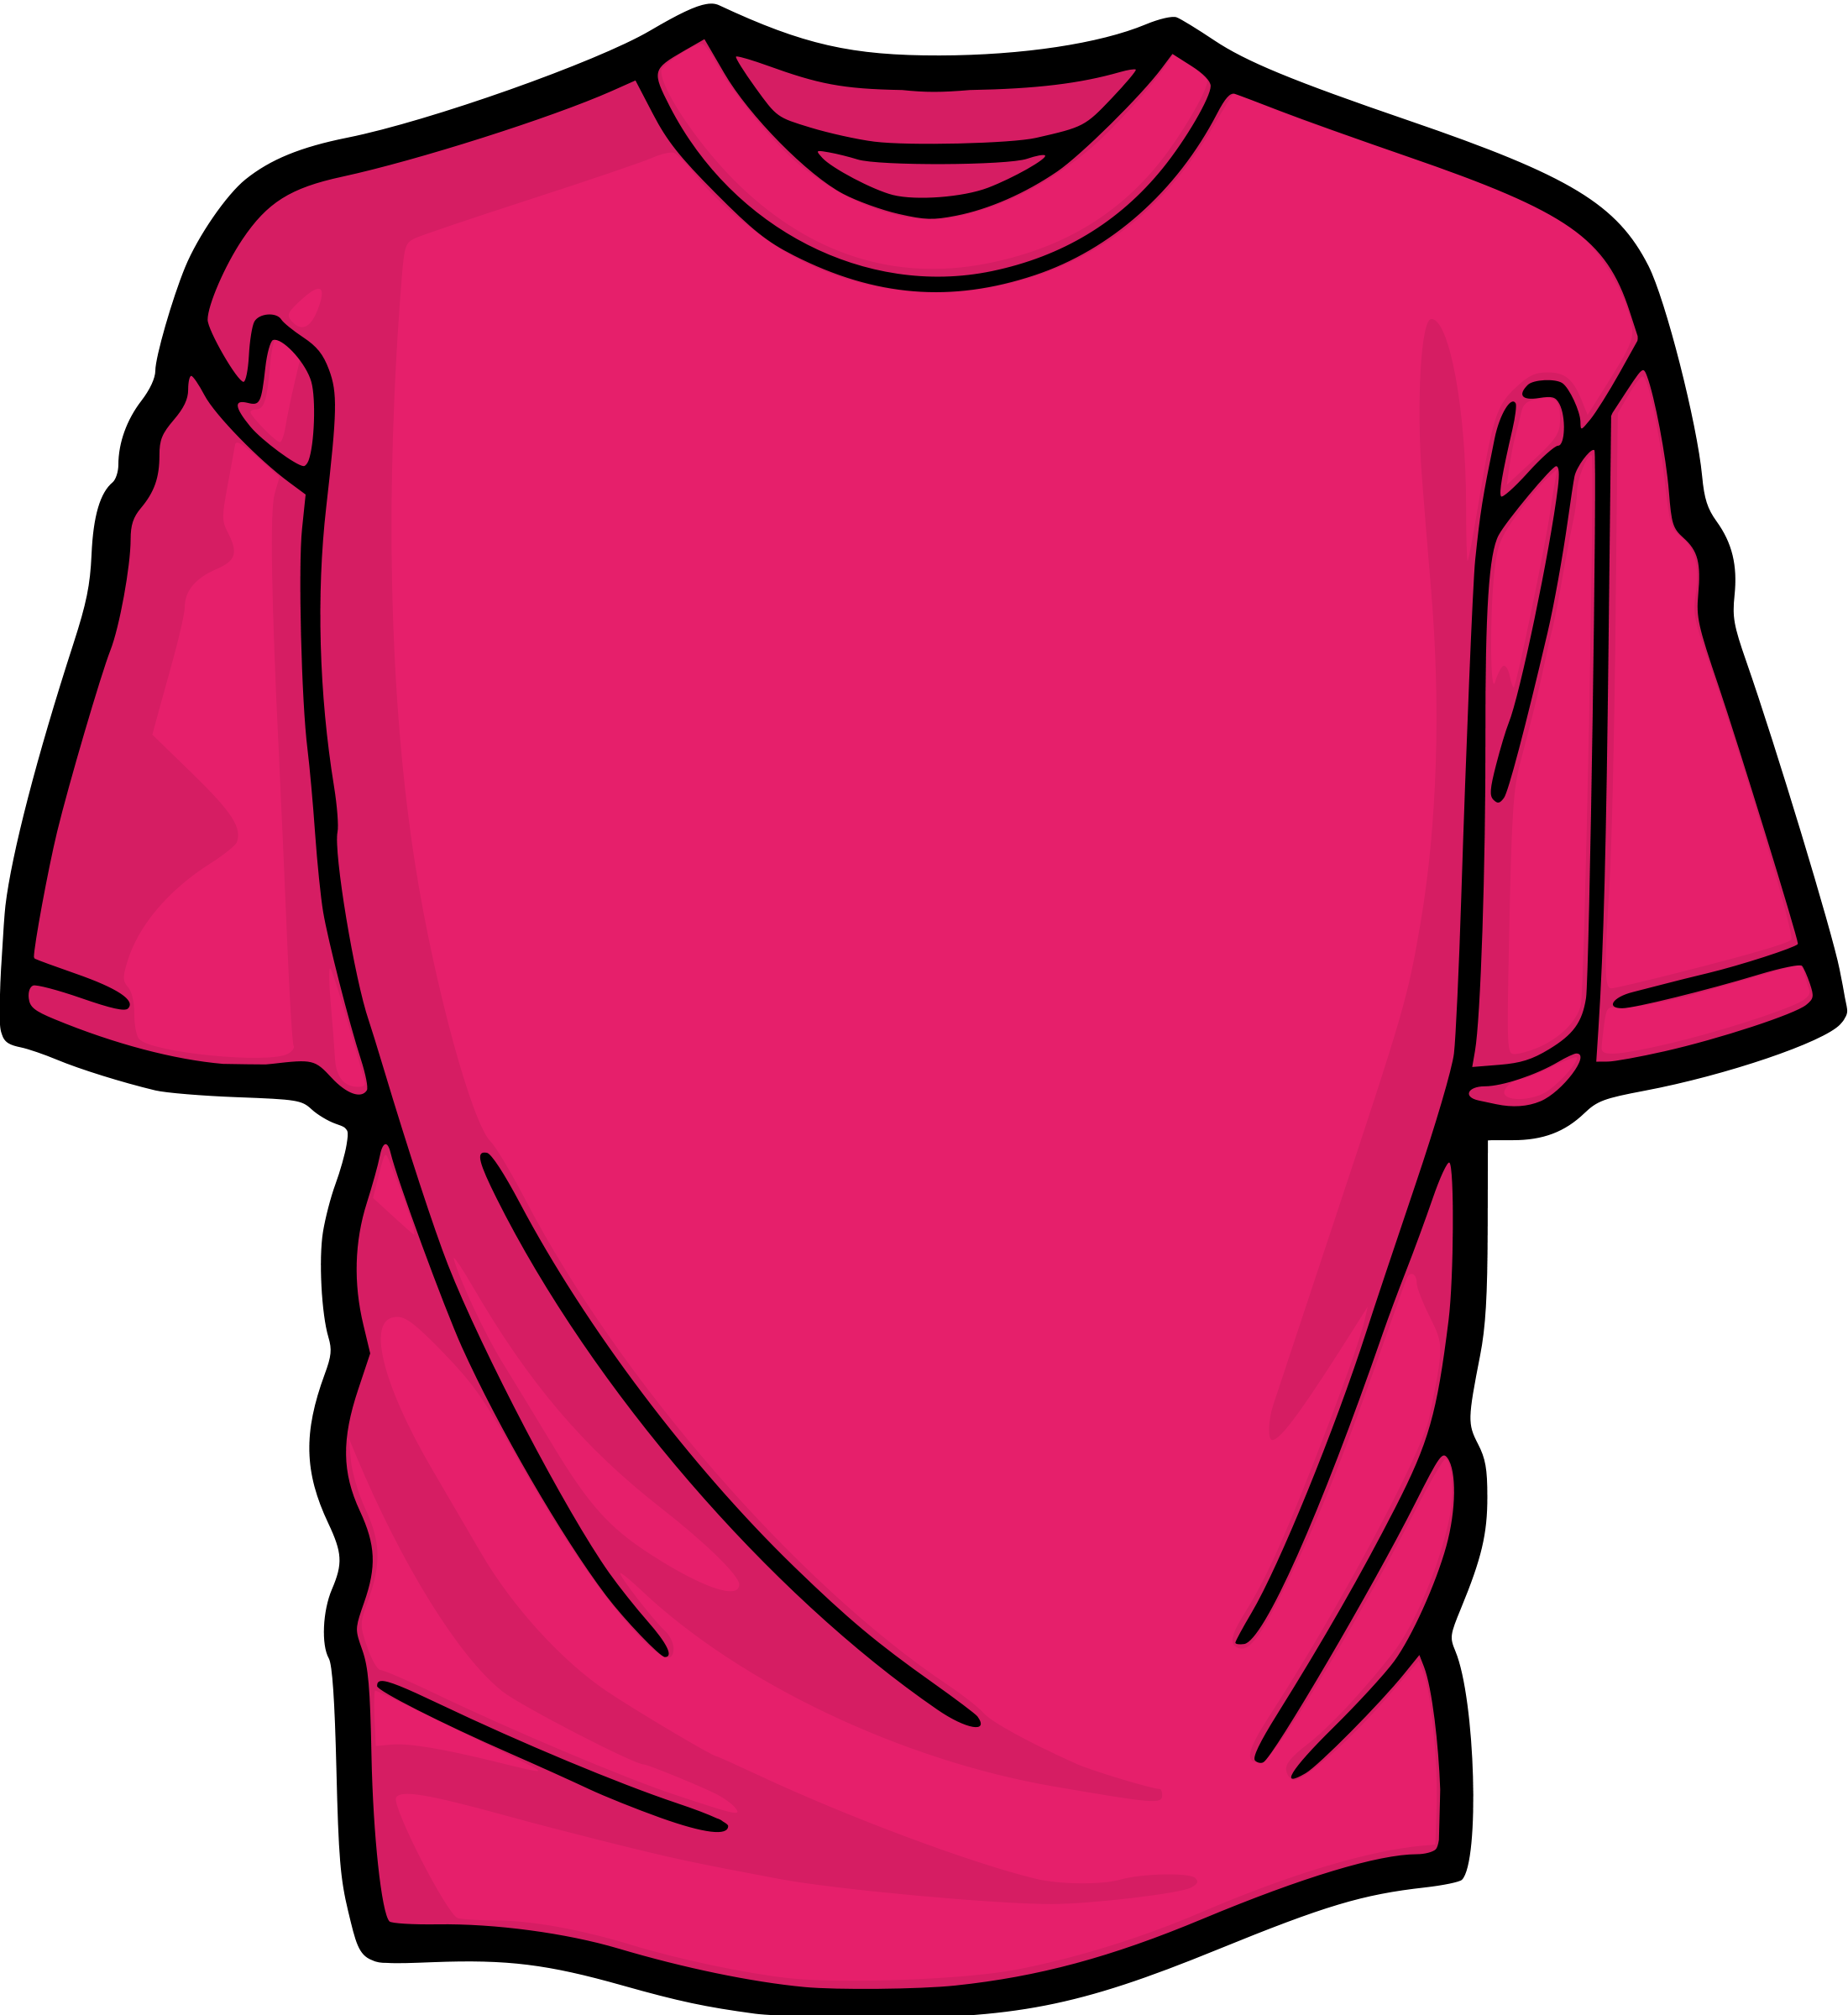 Free T-Shirt Cliparts, Download Free Clip Art, Free Clip Art on ... png royalty free stock